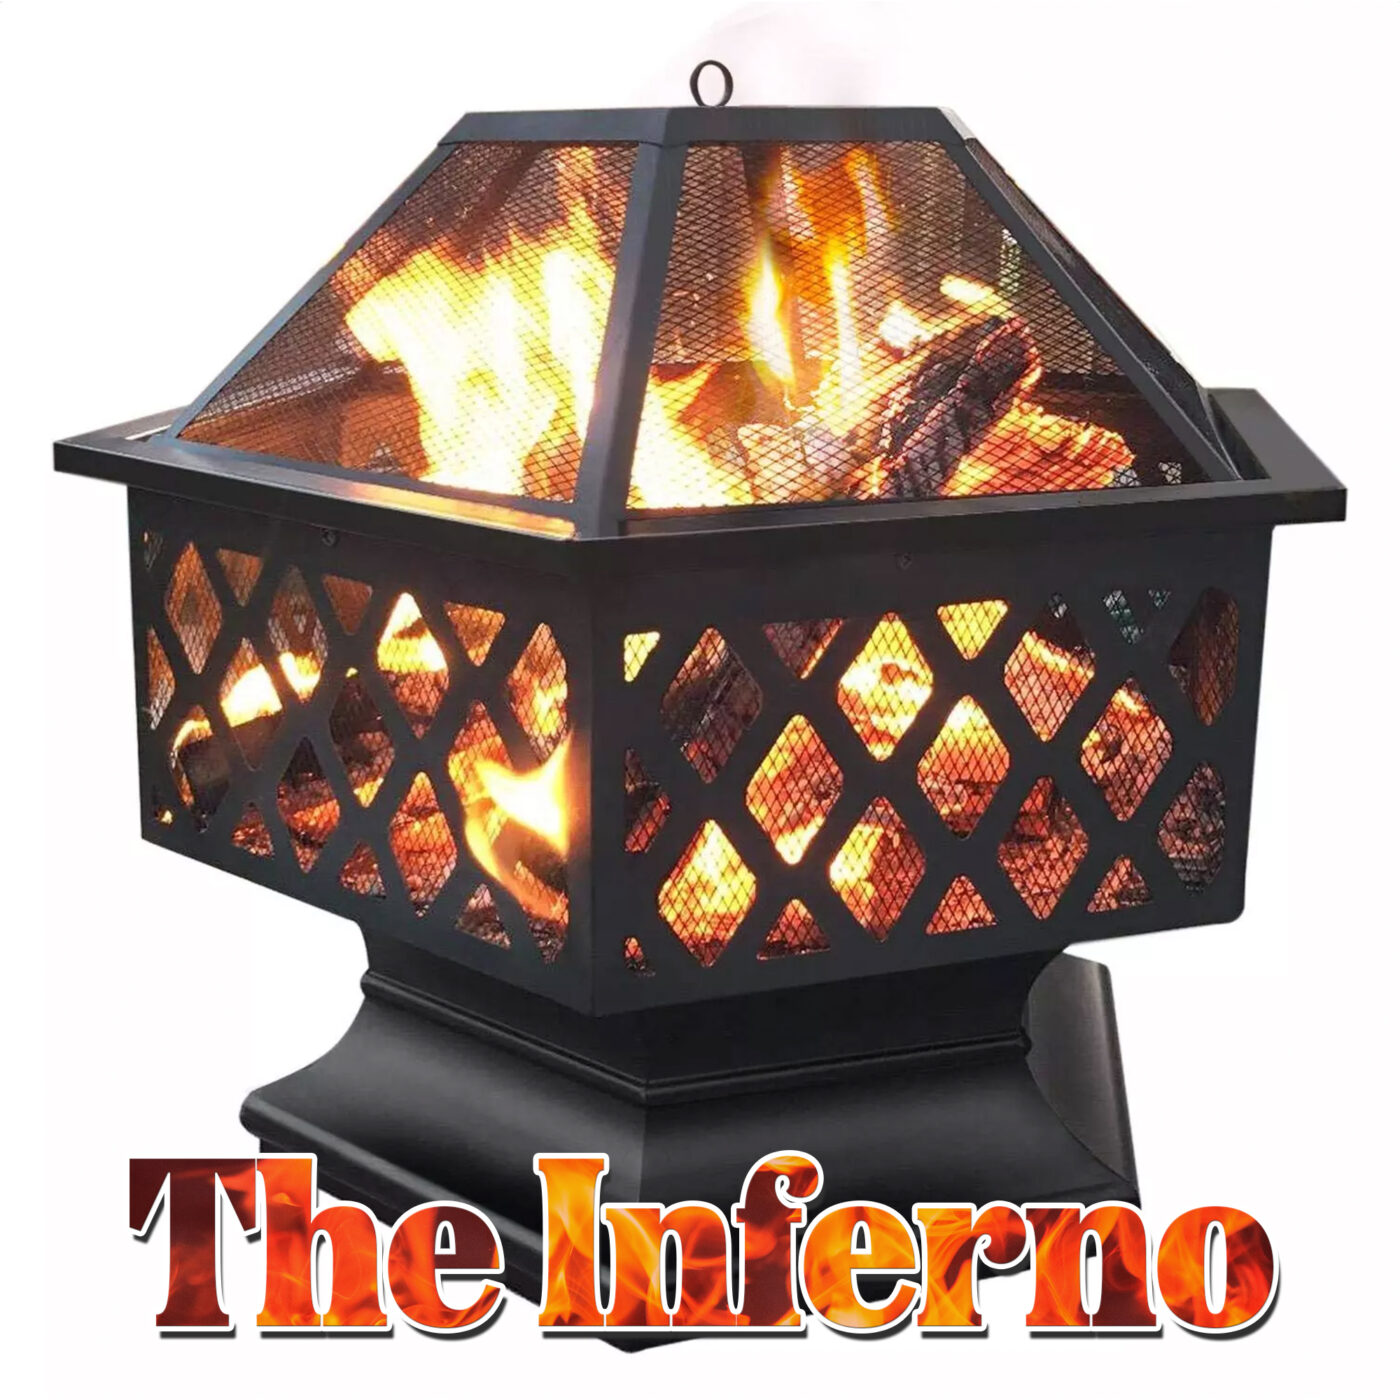 The Inferno firepits against a white background. It is a black, hexagonal firepit with wide mesh sides and thin mesh top pieces. There is a sold, heavy-looking base too. It reads 'the inferno' in flame-styled writing on the image too.